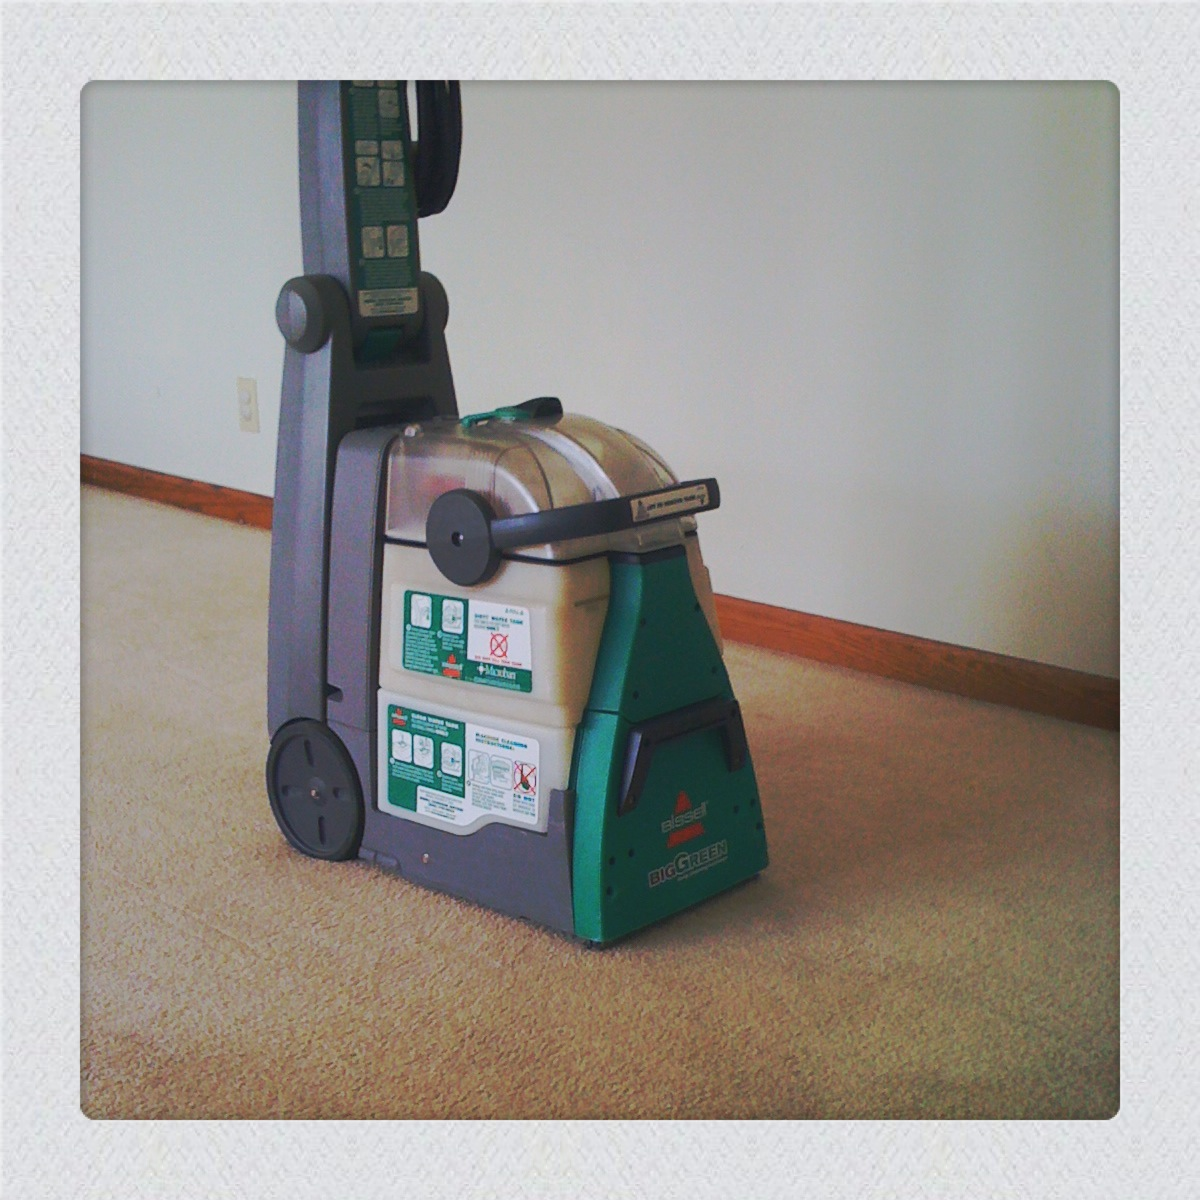 to diy with a bissell take home steam cleaner rented from